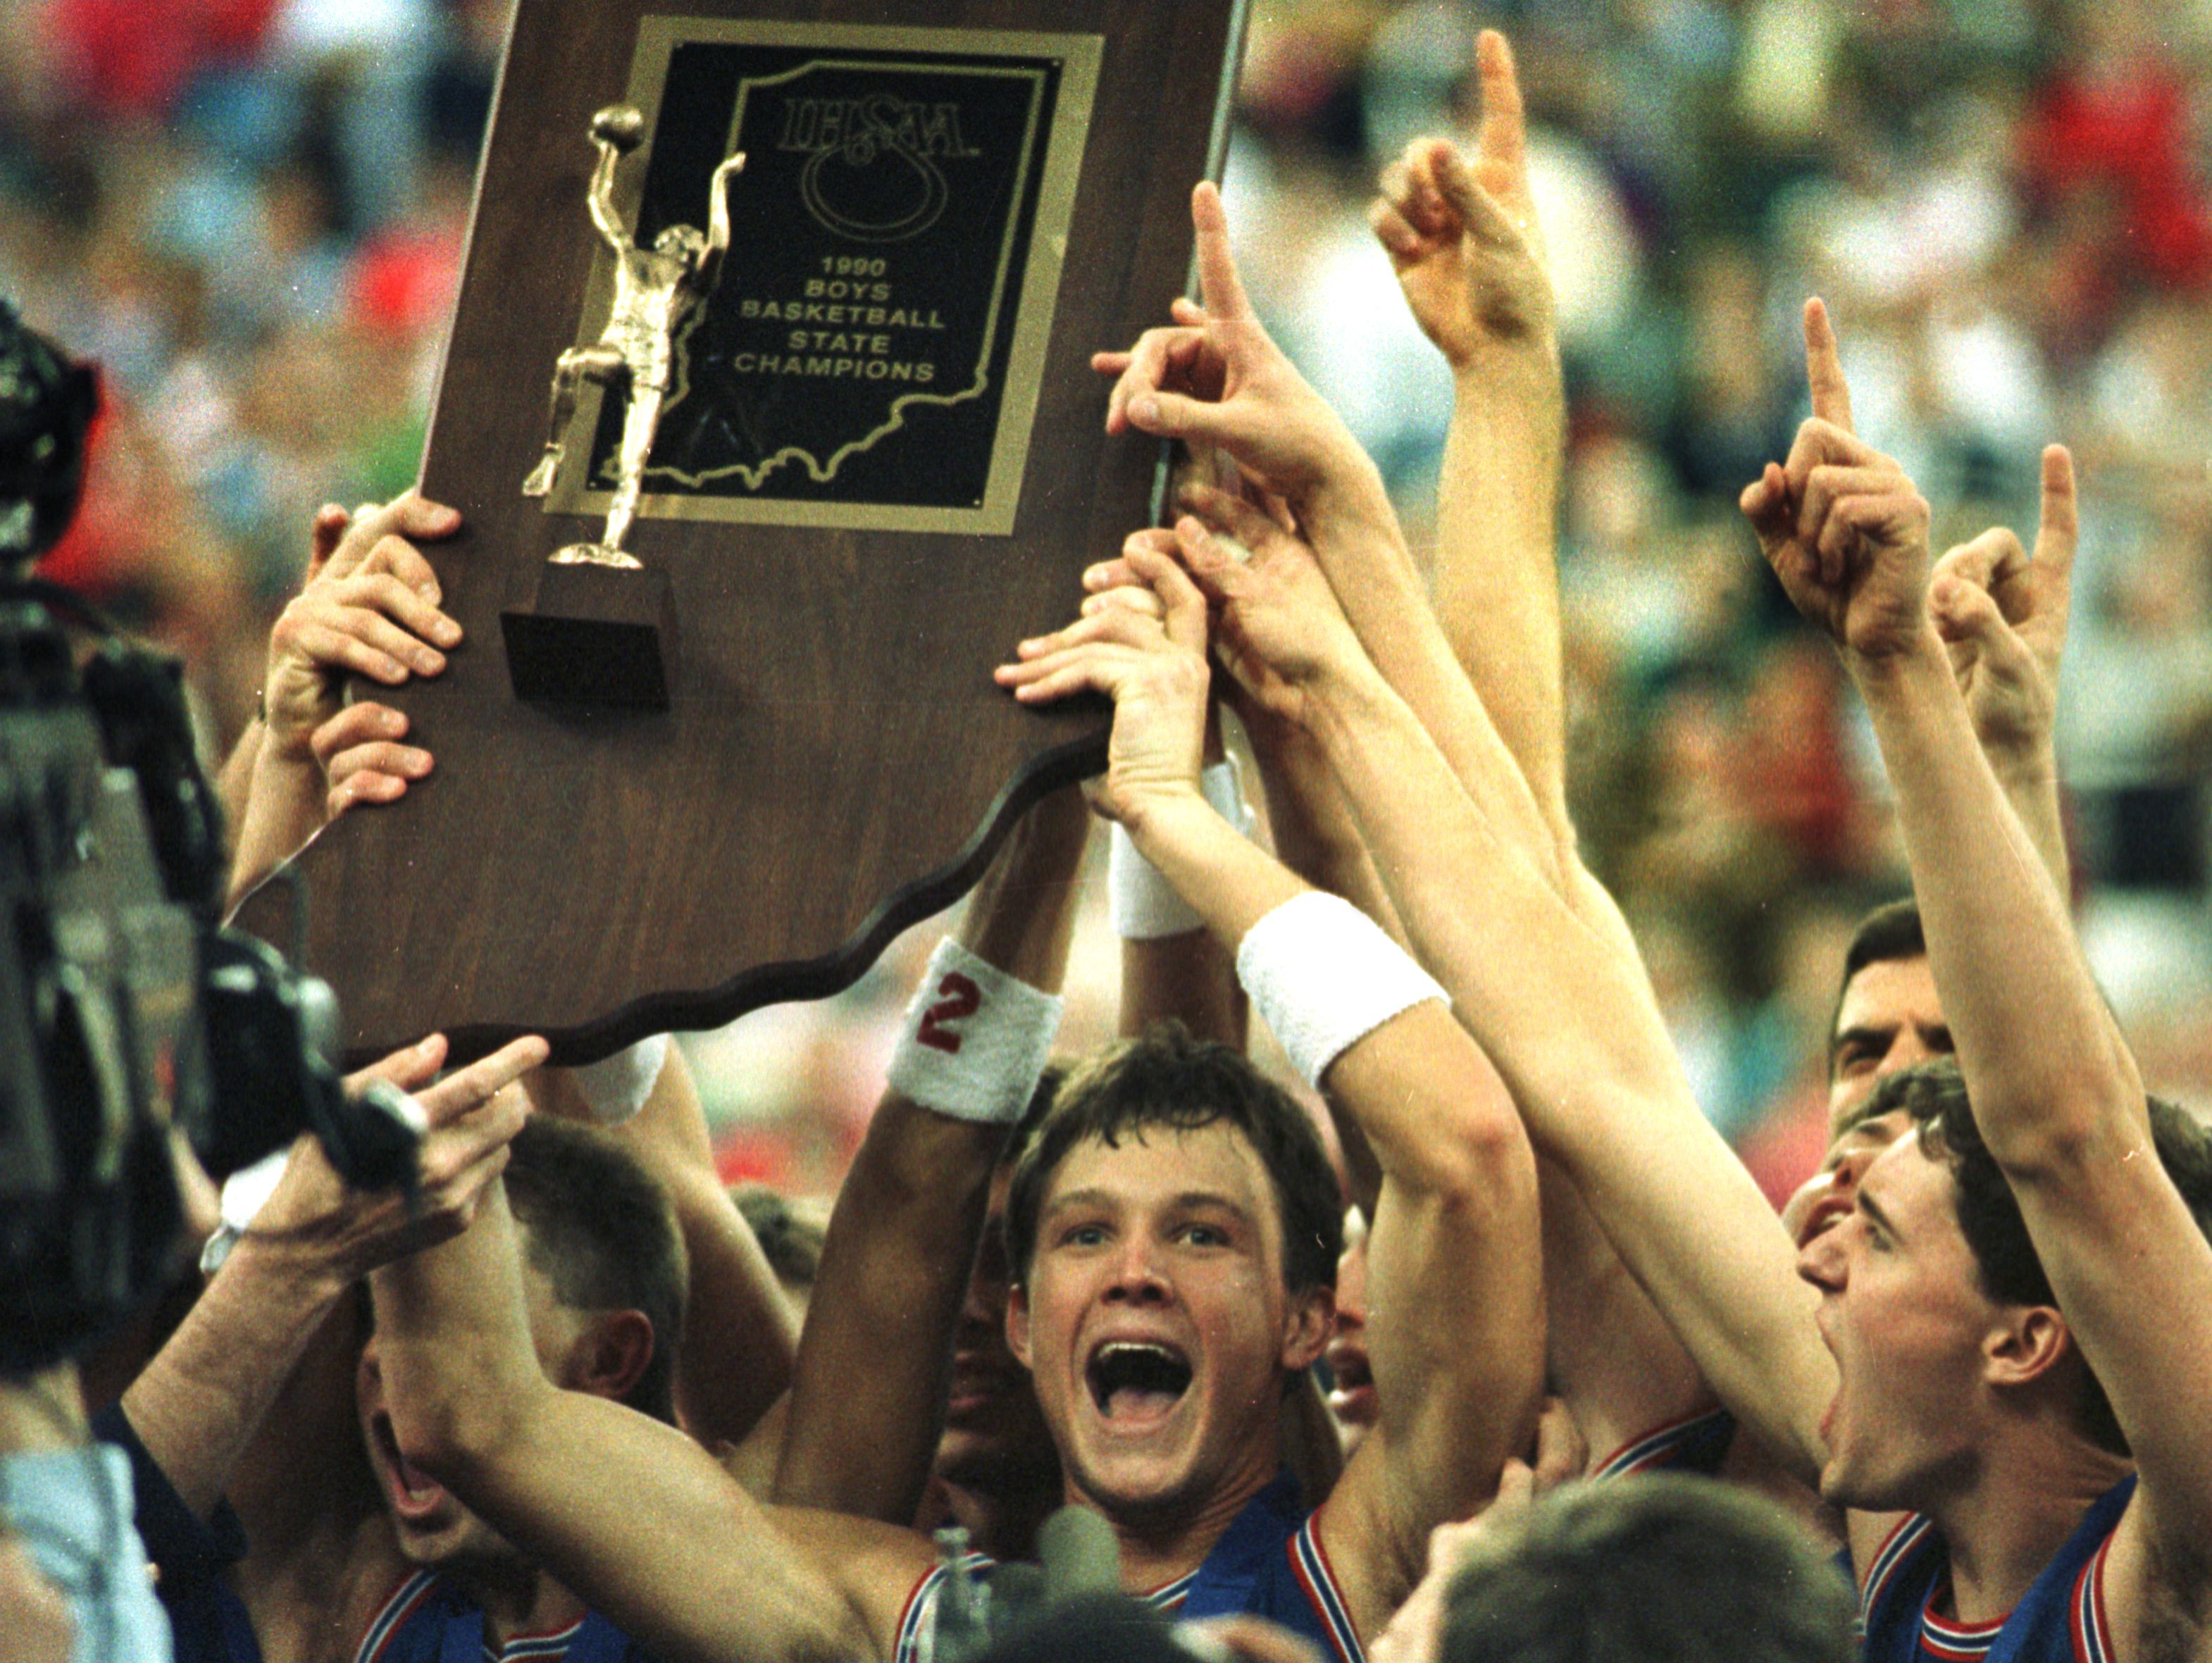 March 1990, Damon Bailey holds up the boys basketball championship trophy after leading his team, Bedford North Lawrence, to a state finals victory at the Hoosier Dome.